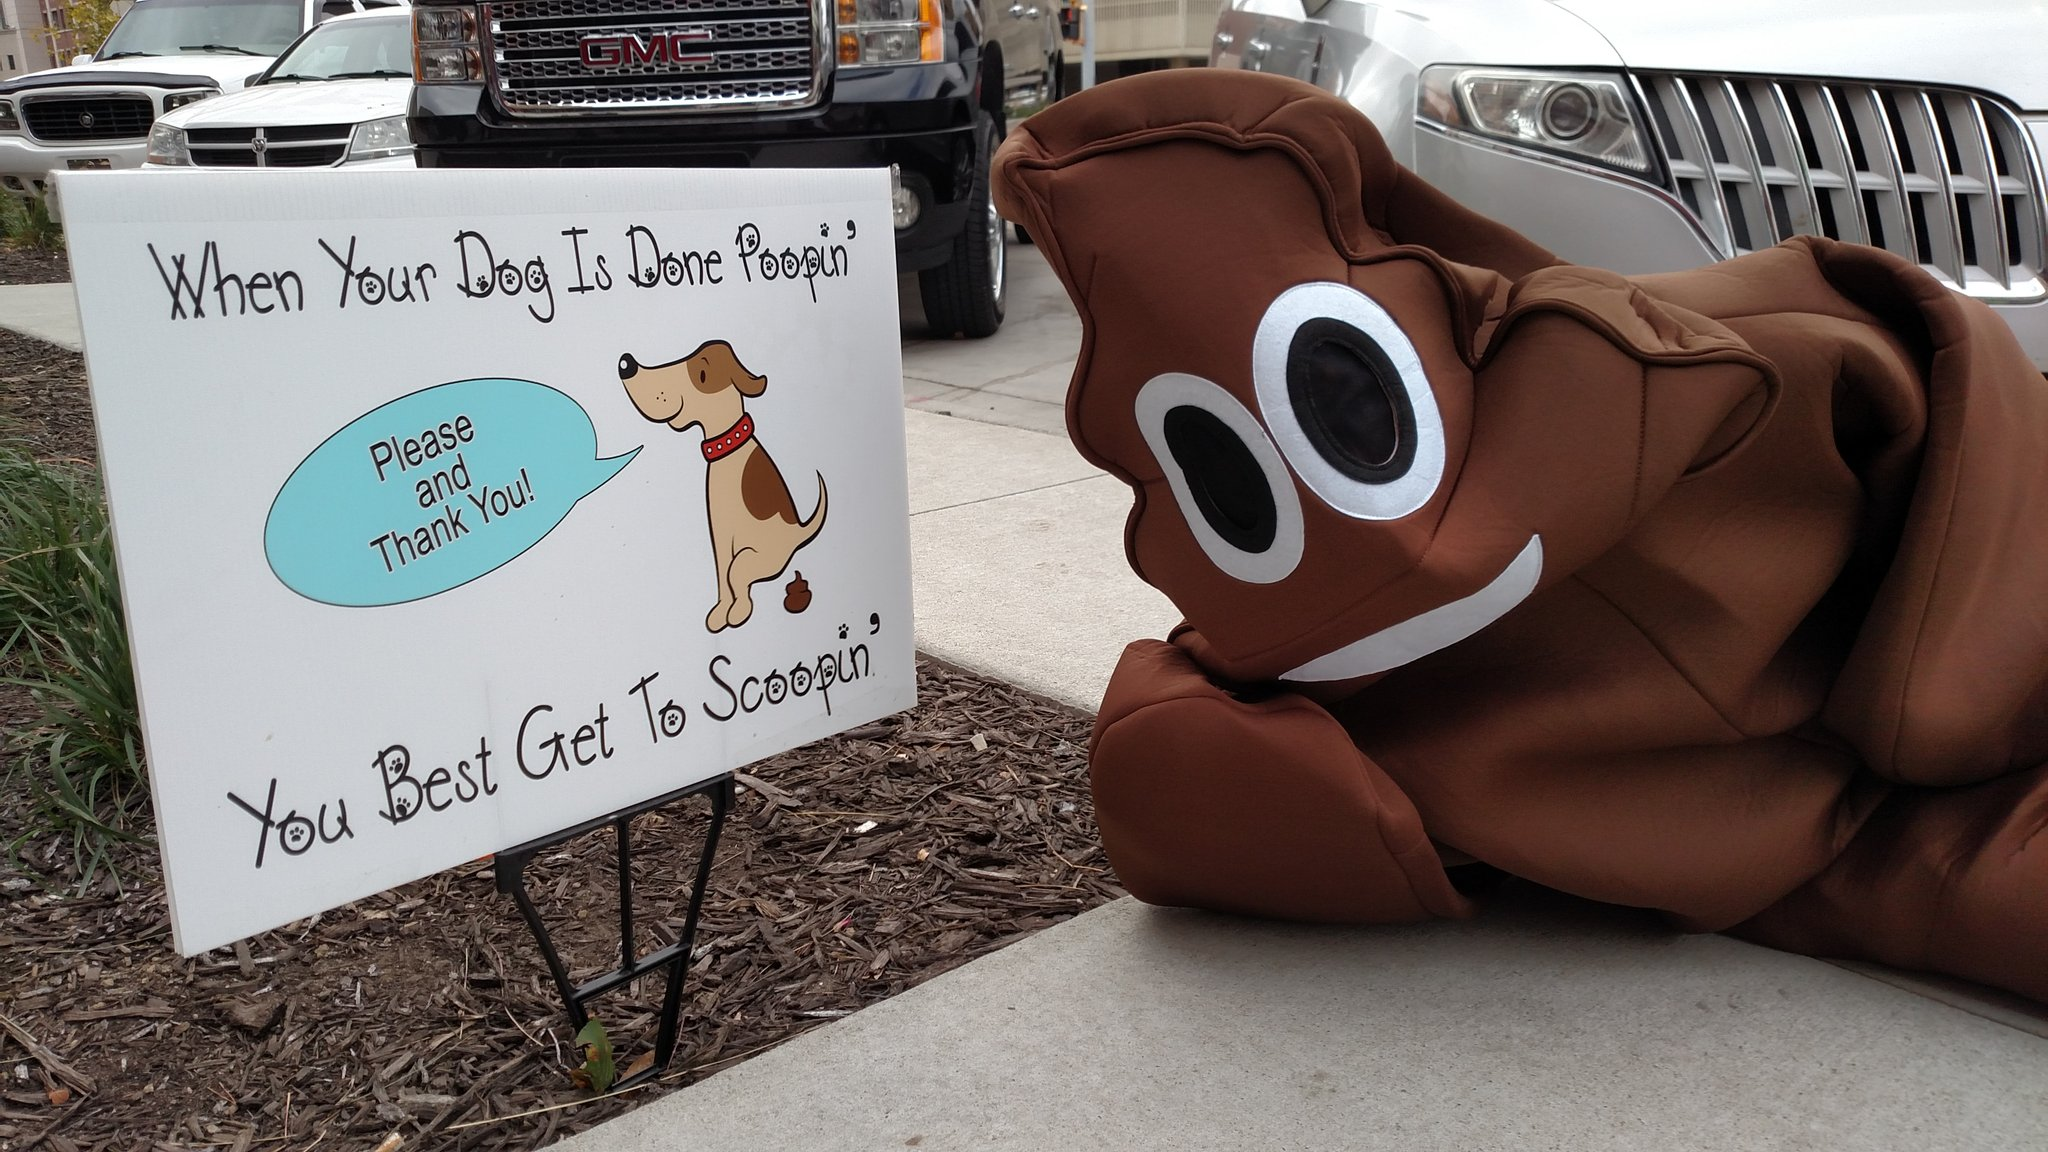 Ah come on! Bring the bag with you!  #topeka #worldtoiletday https://t.co/l9xUpY7sEz